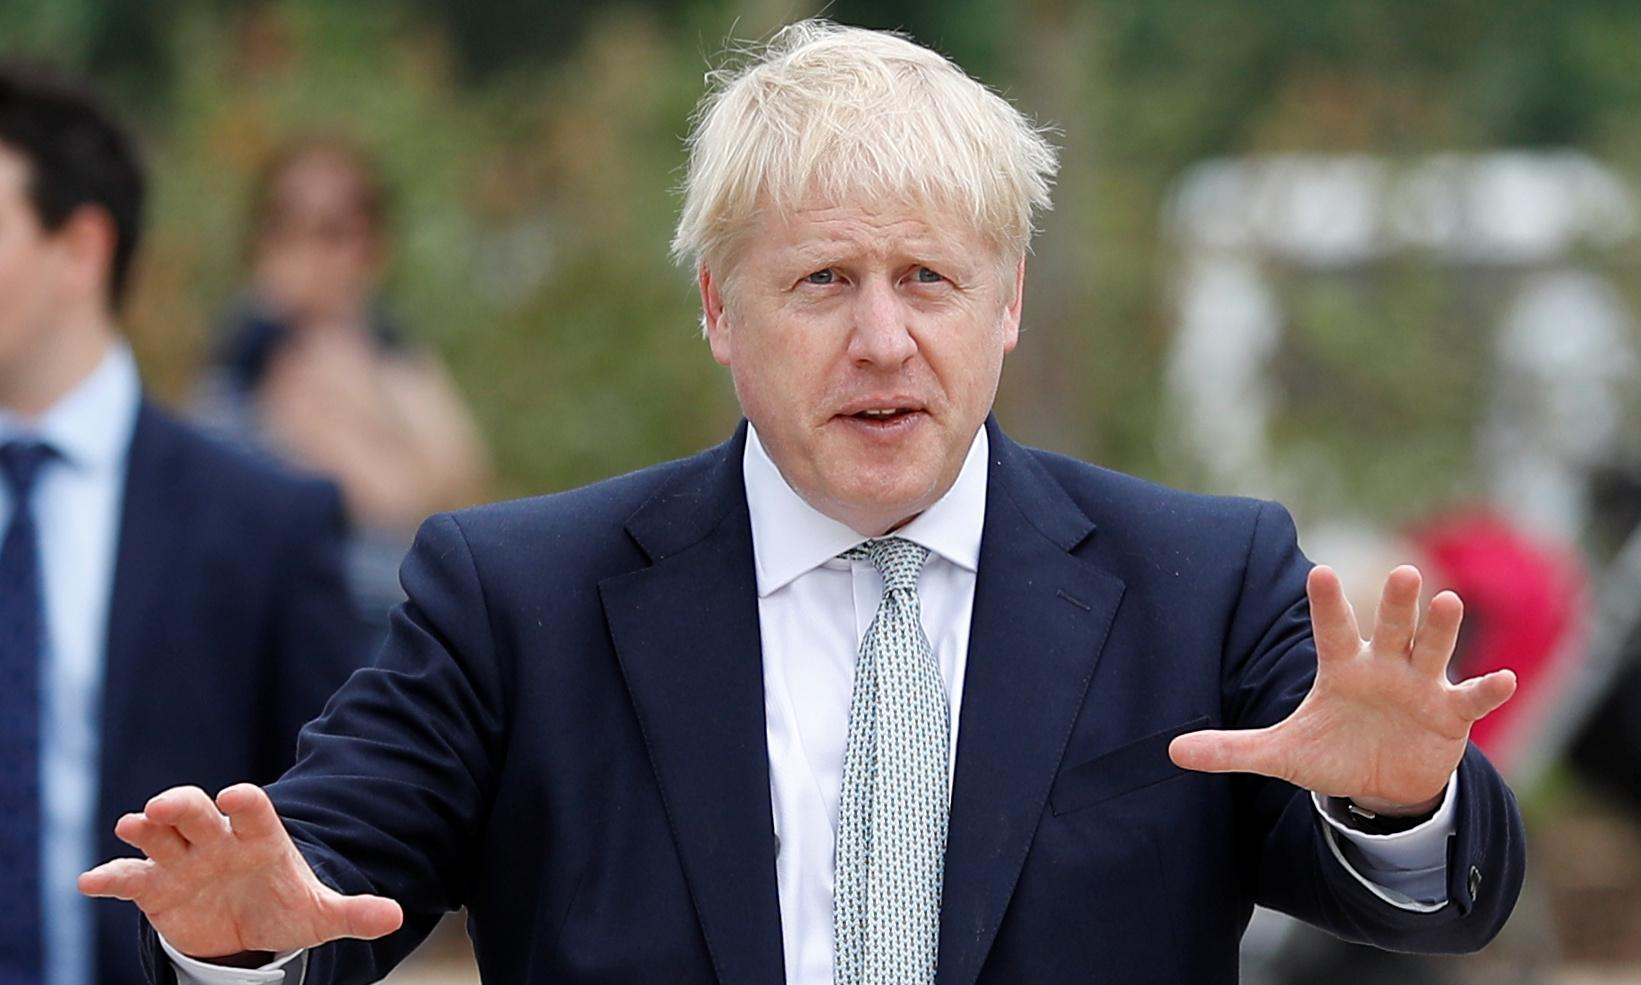 Brexit: Johnson says Britain will leave EU on 31 October 'do or die'